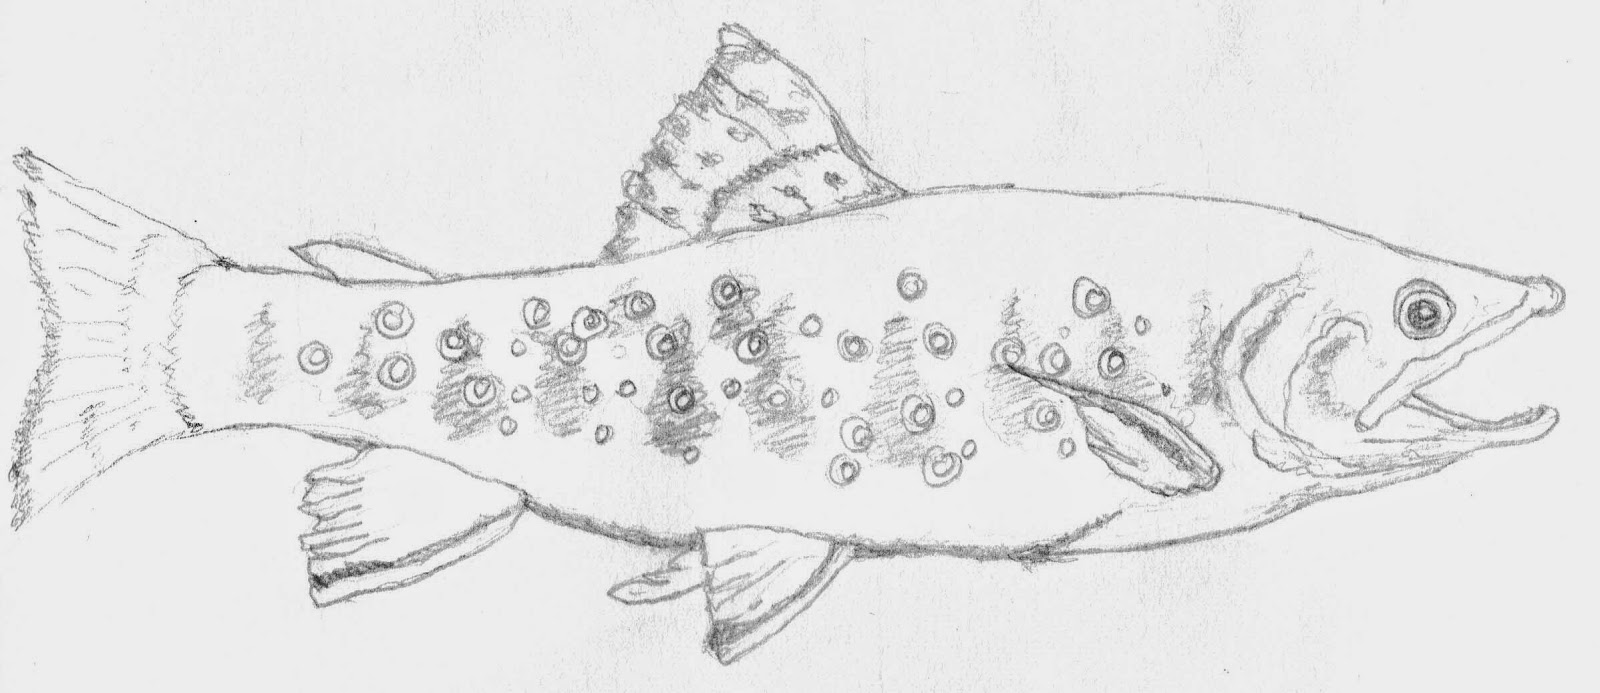 85   brook trout coloring page   michigan state fish brook trout  trout coloring page White-Tailed Deer Coloring Pages  Brook Trout Coloring Page